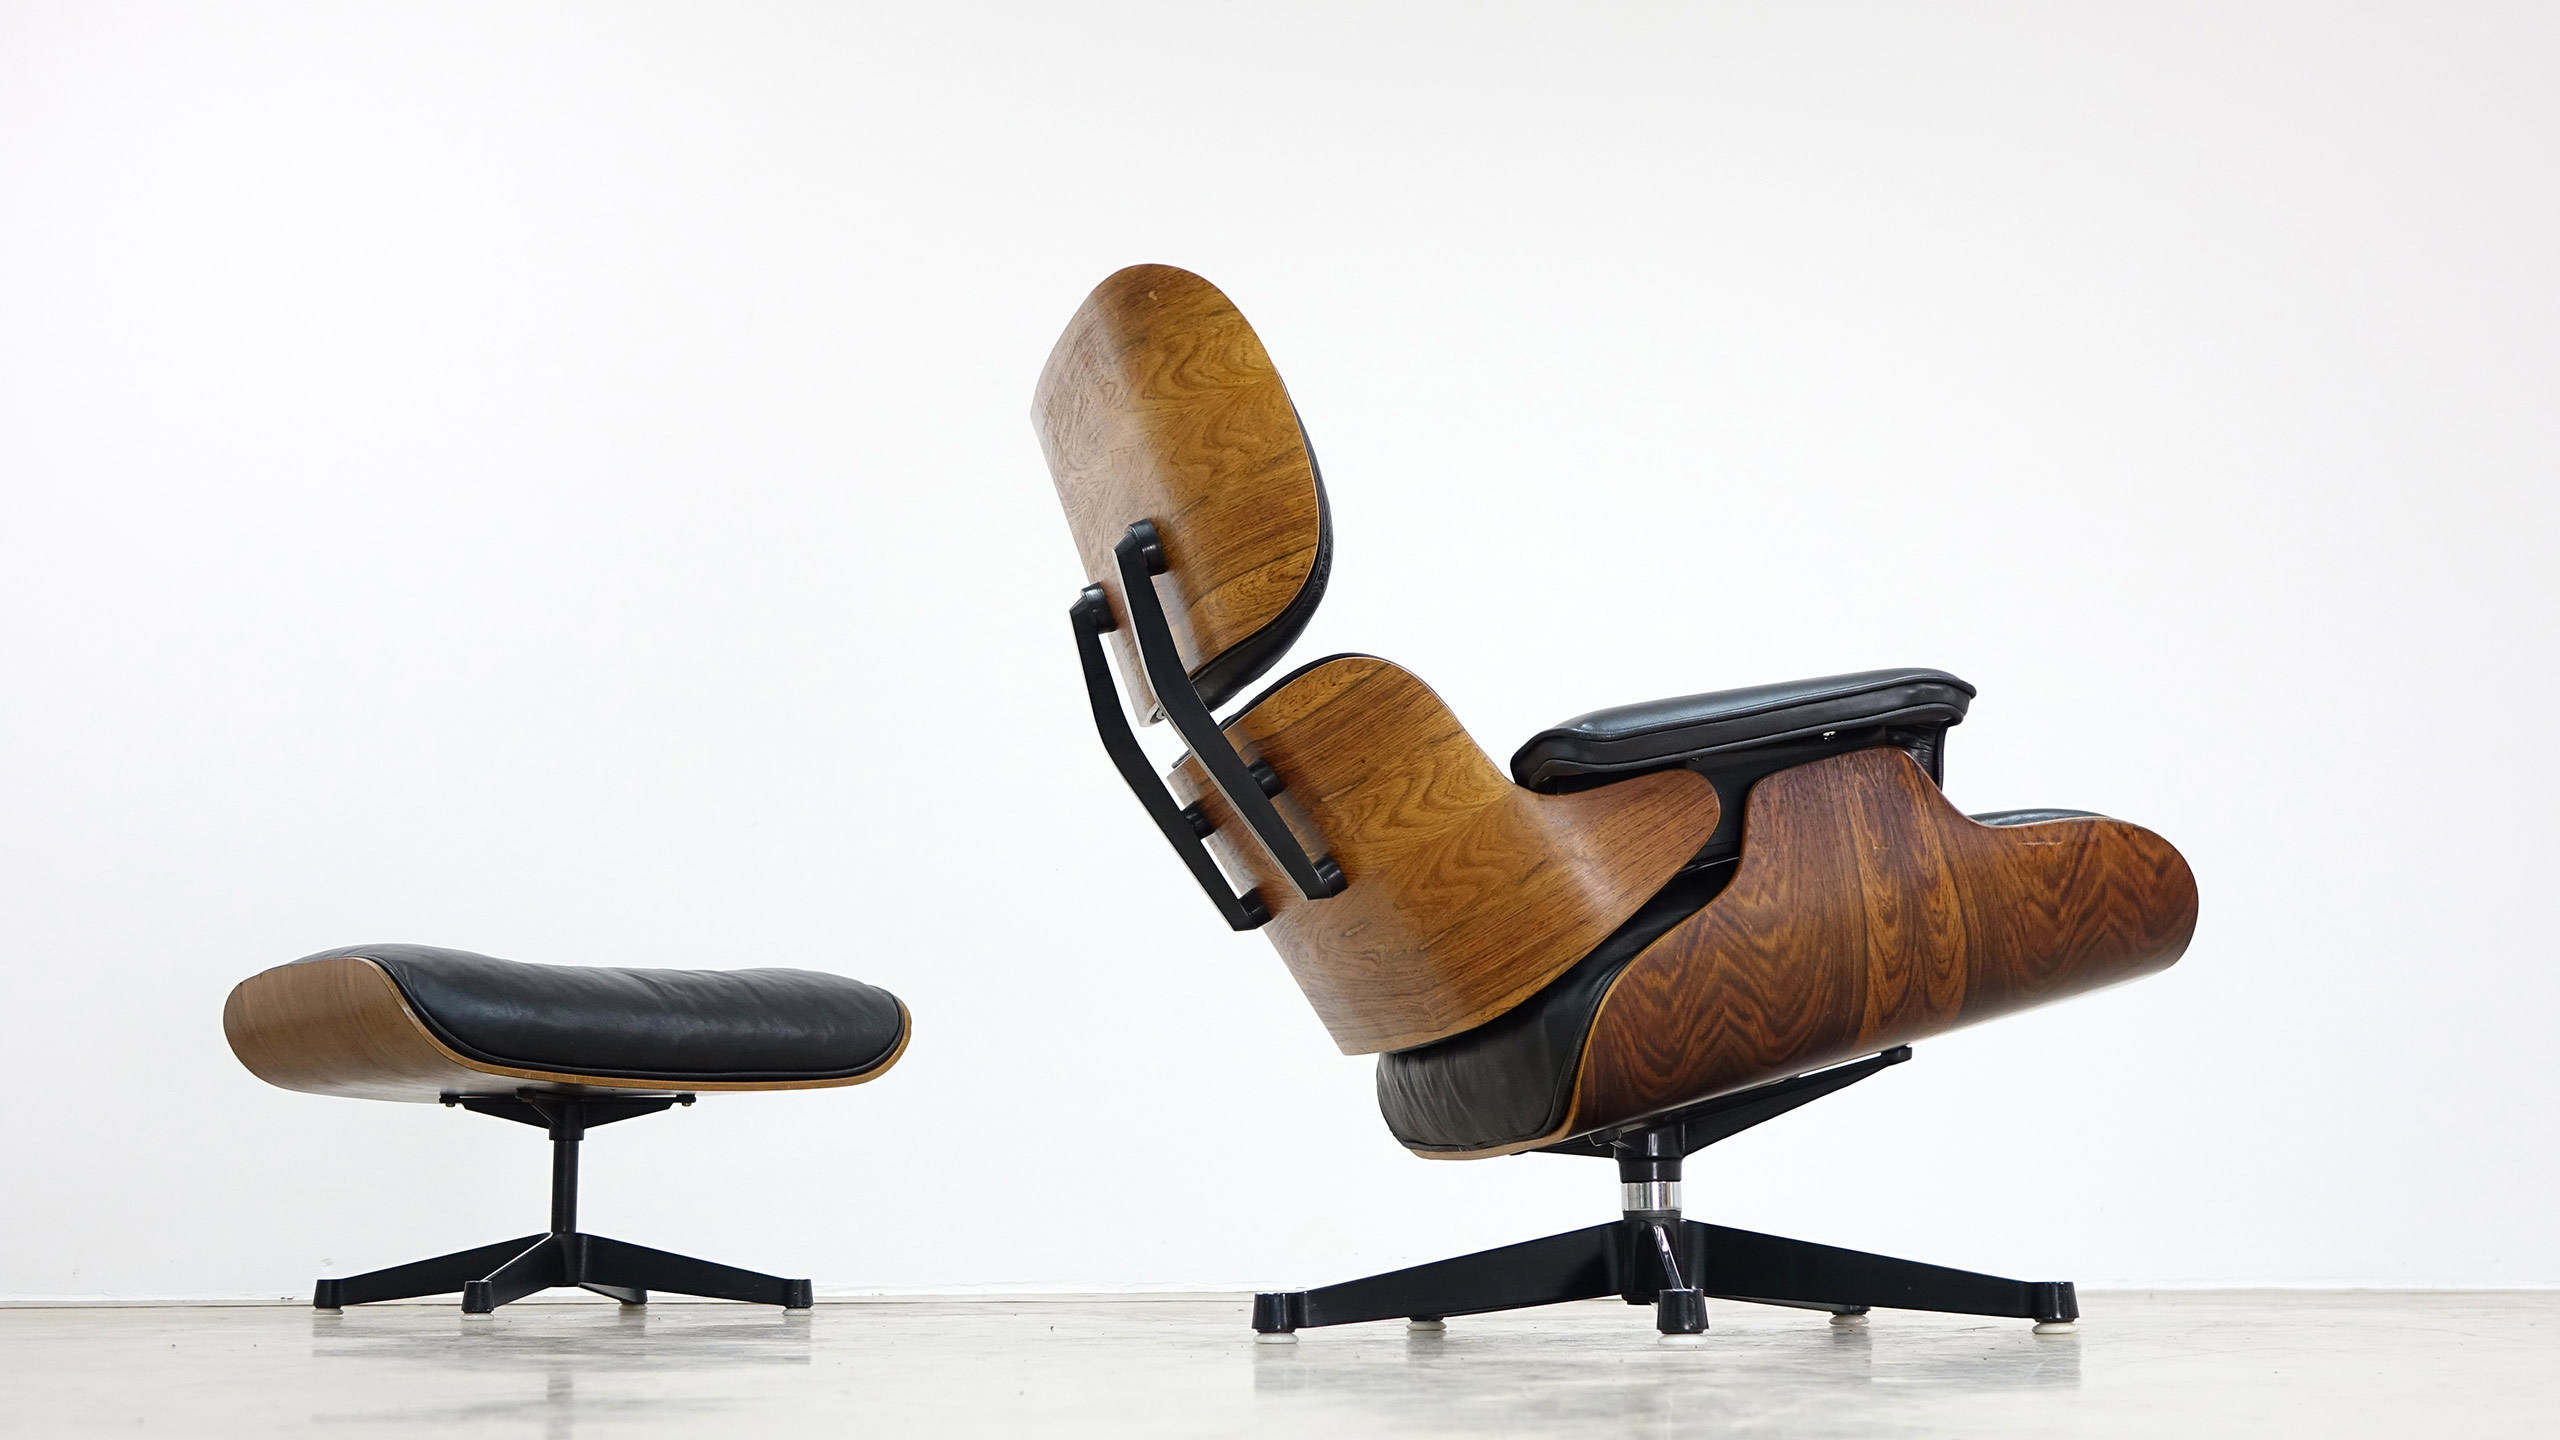 charles ray eames lounge chair by contura fehlbaum. Black Bedroom Furniture Sets. Home Design Ideas